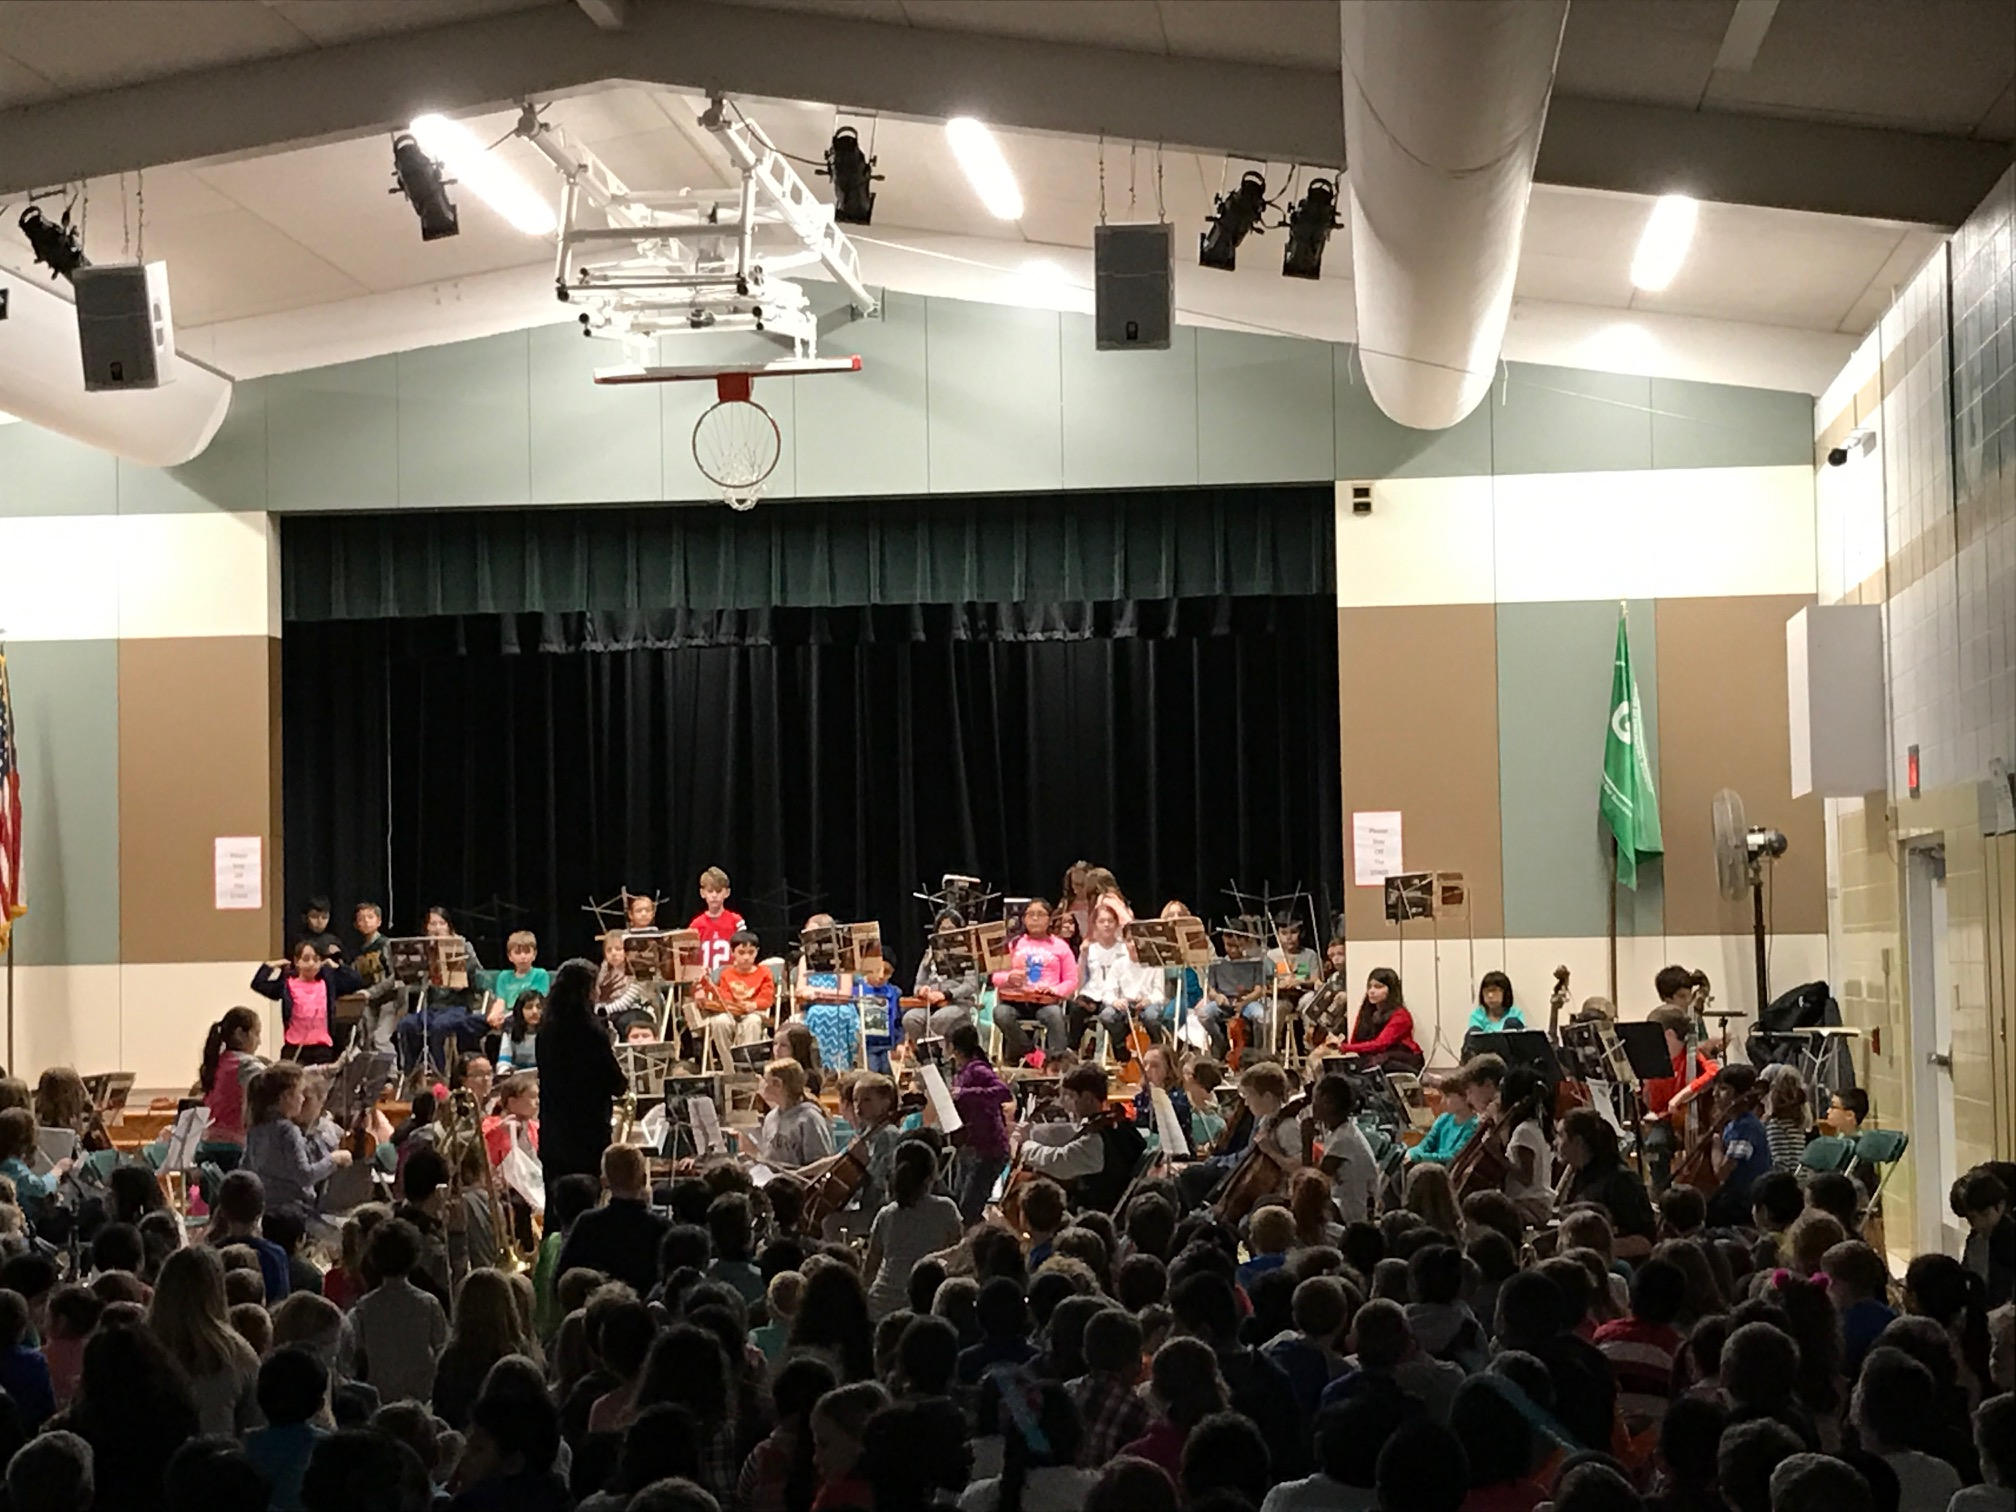 elementary school orchestra performing in front of an audience